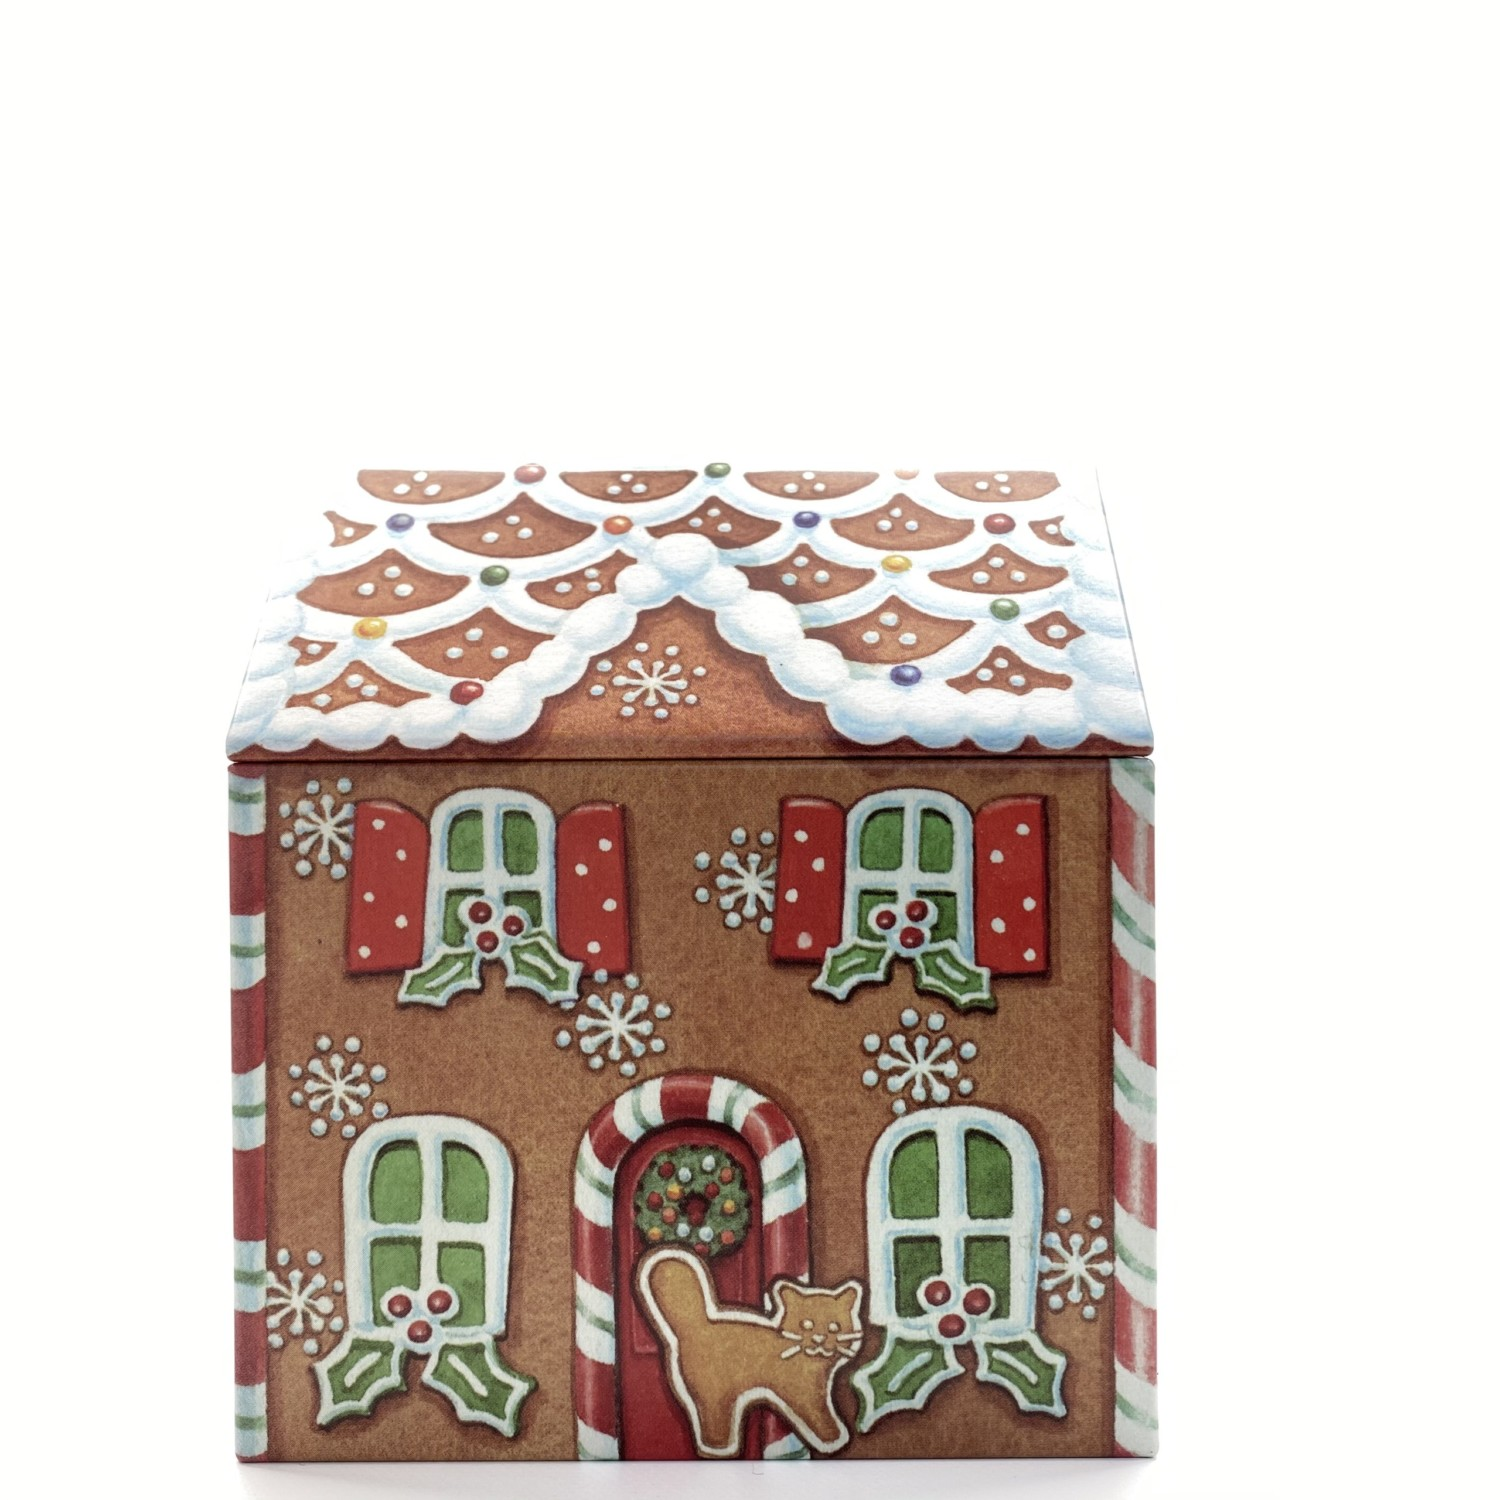 gingerbread house shaped tin front view